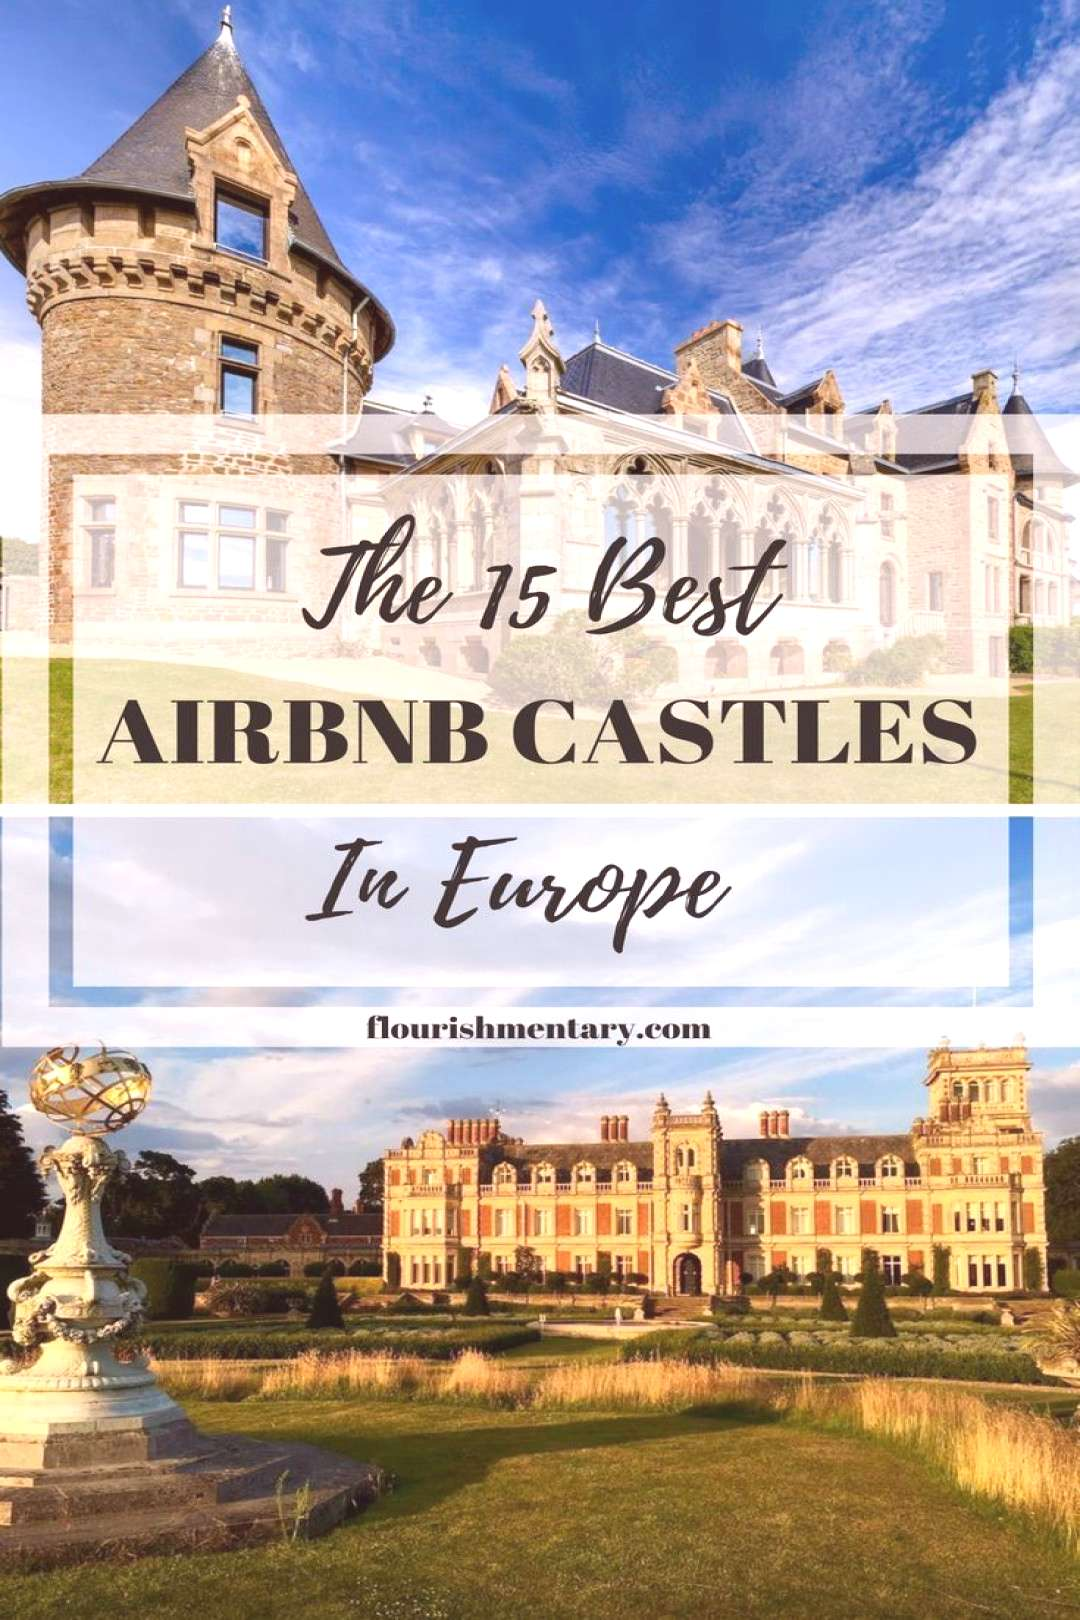 The 15 Best Airbnb Castles In Europe | Flourishmentary -  best airbnb castles europe  -